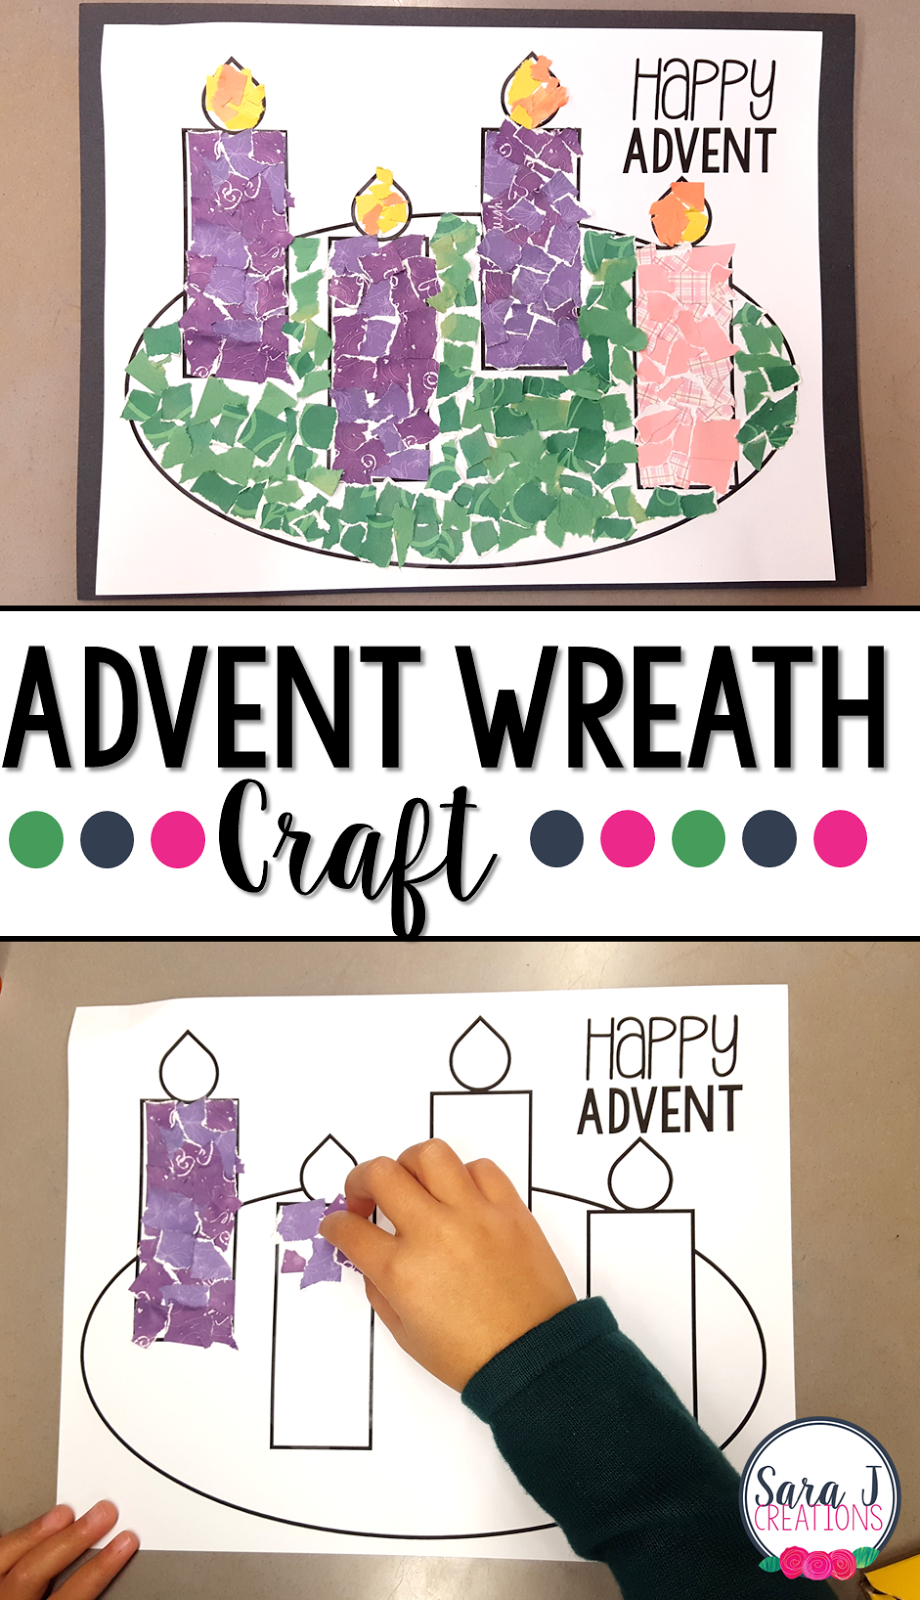 hight resolution of 100+ Simple Catholic Advent Crafts and Activities for Kids